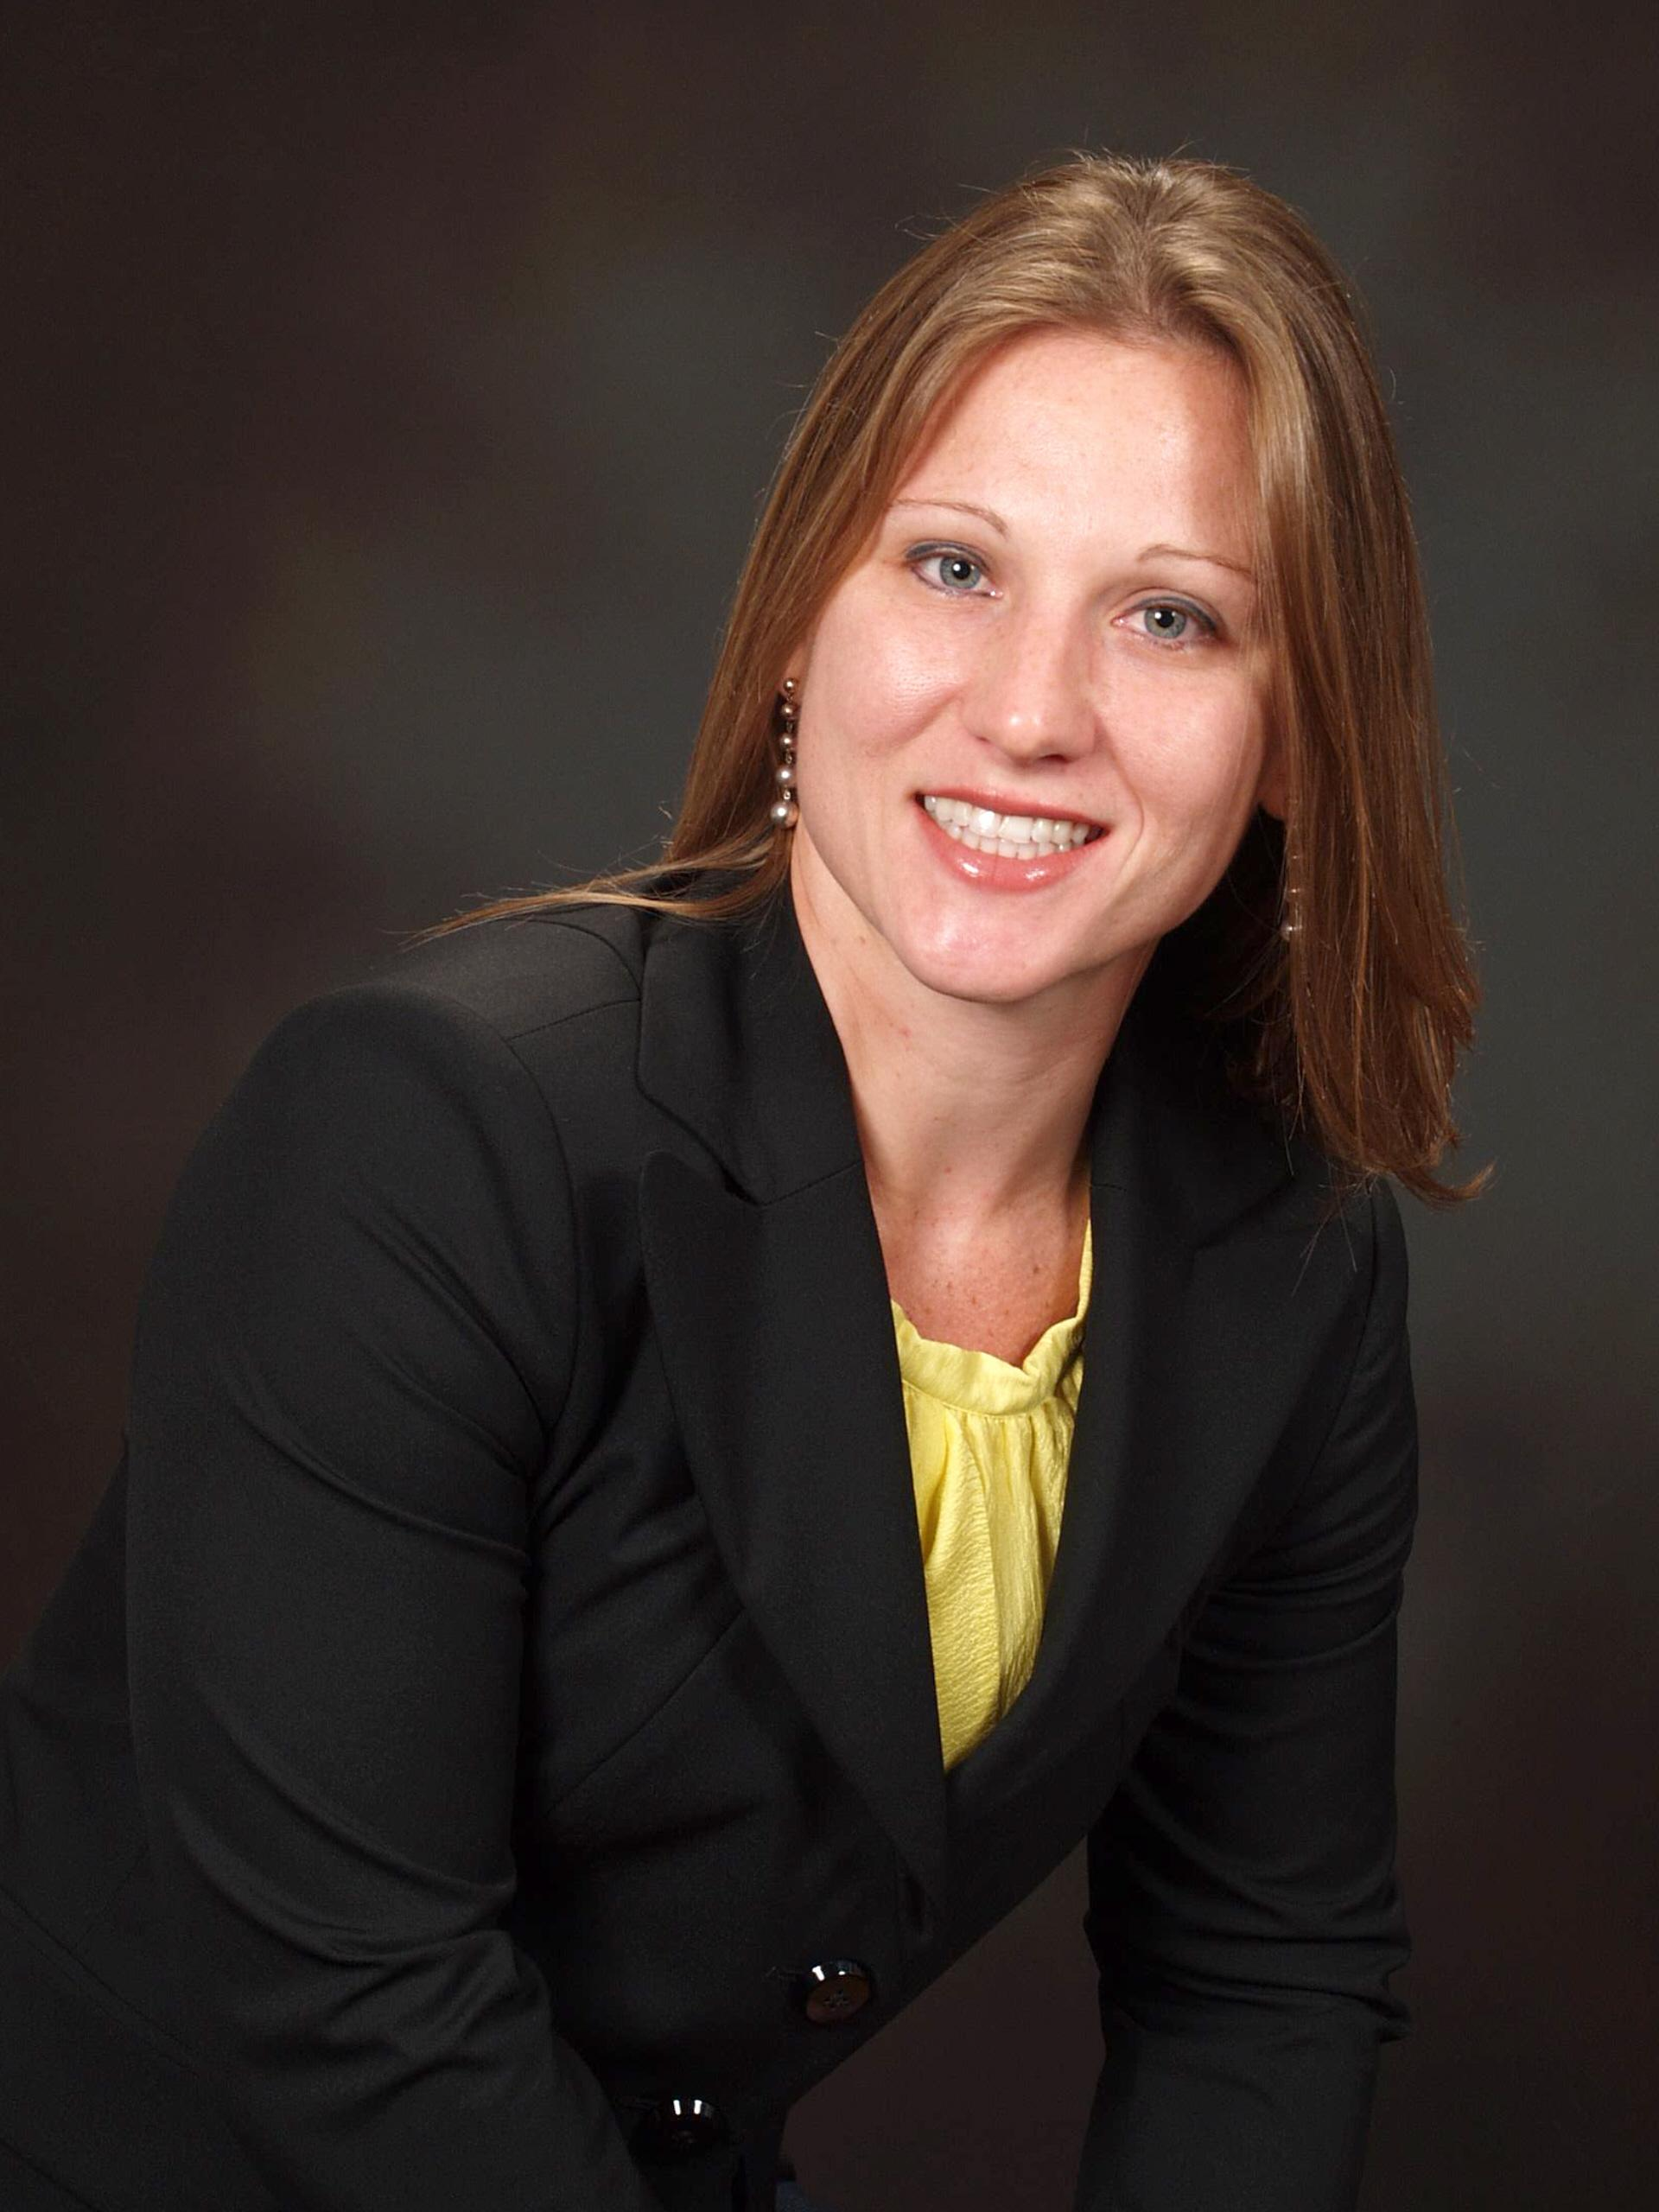 SUZANNAH RICHARDS  Your Registered Representative & Insurance Agent